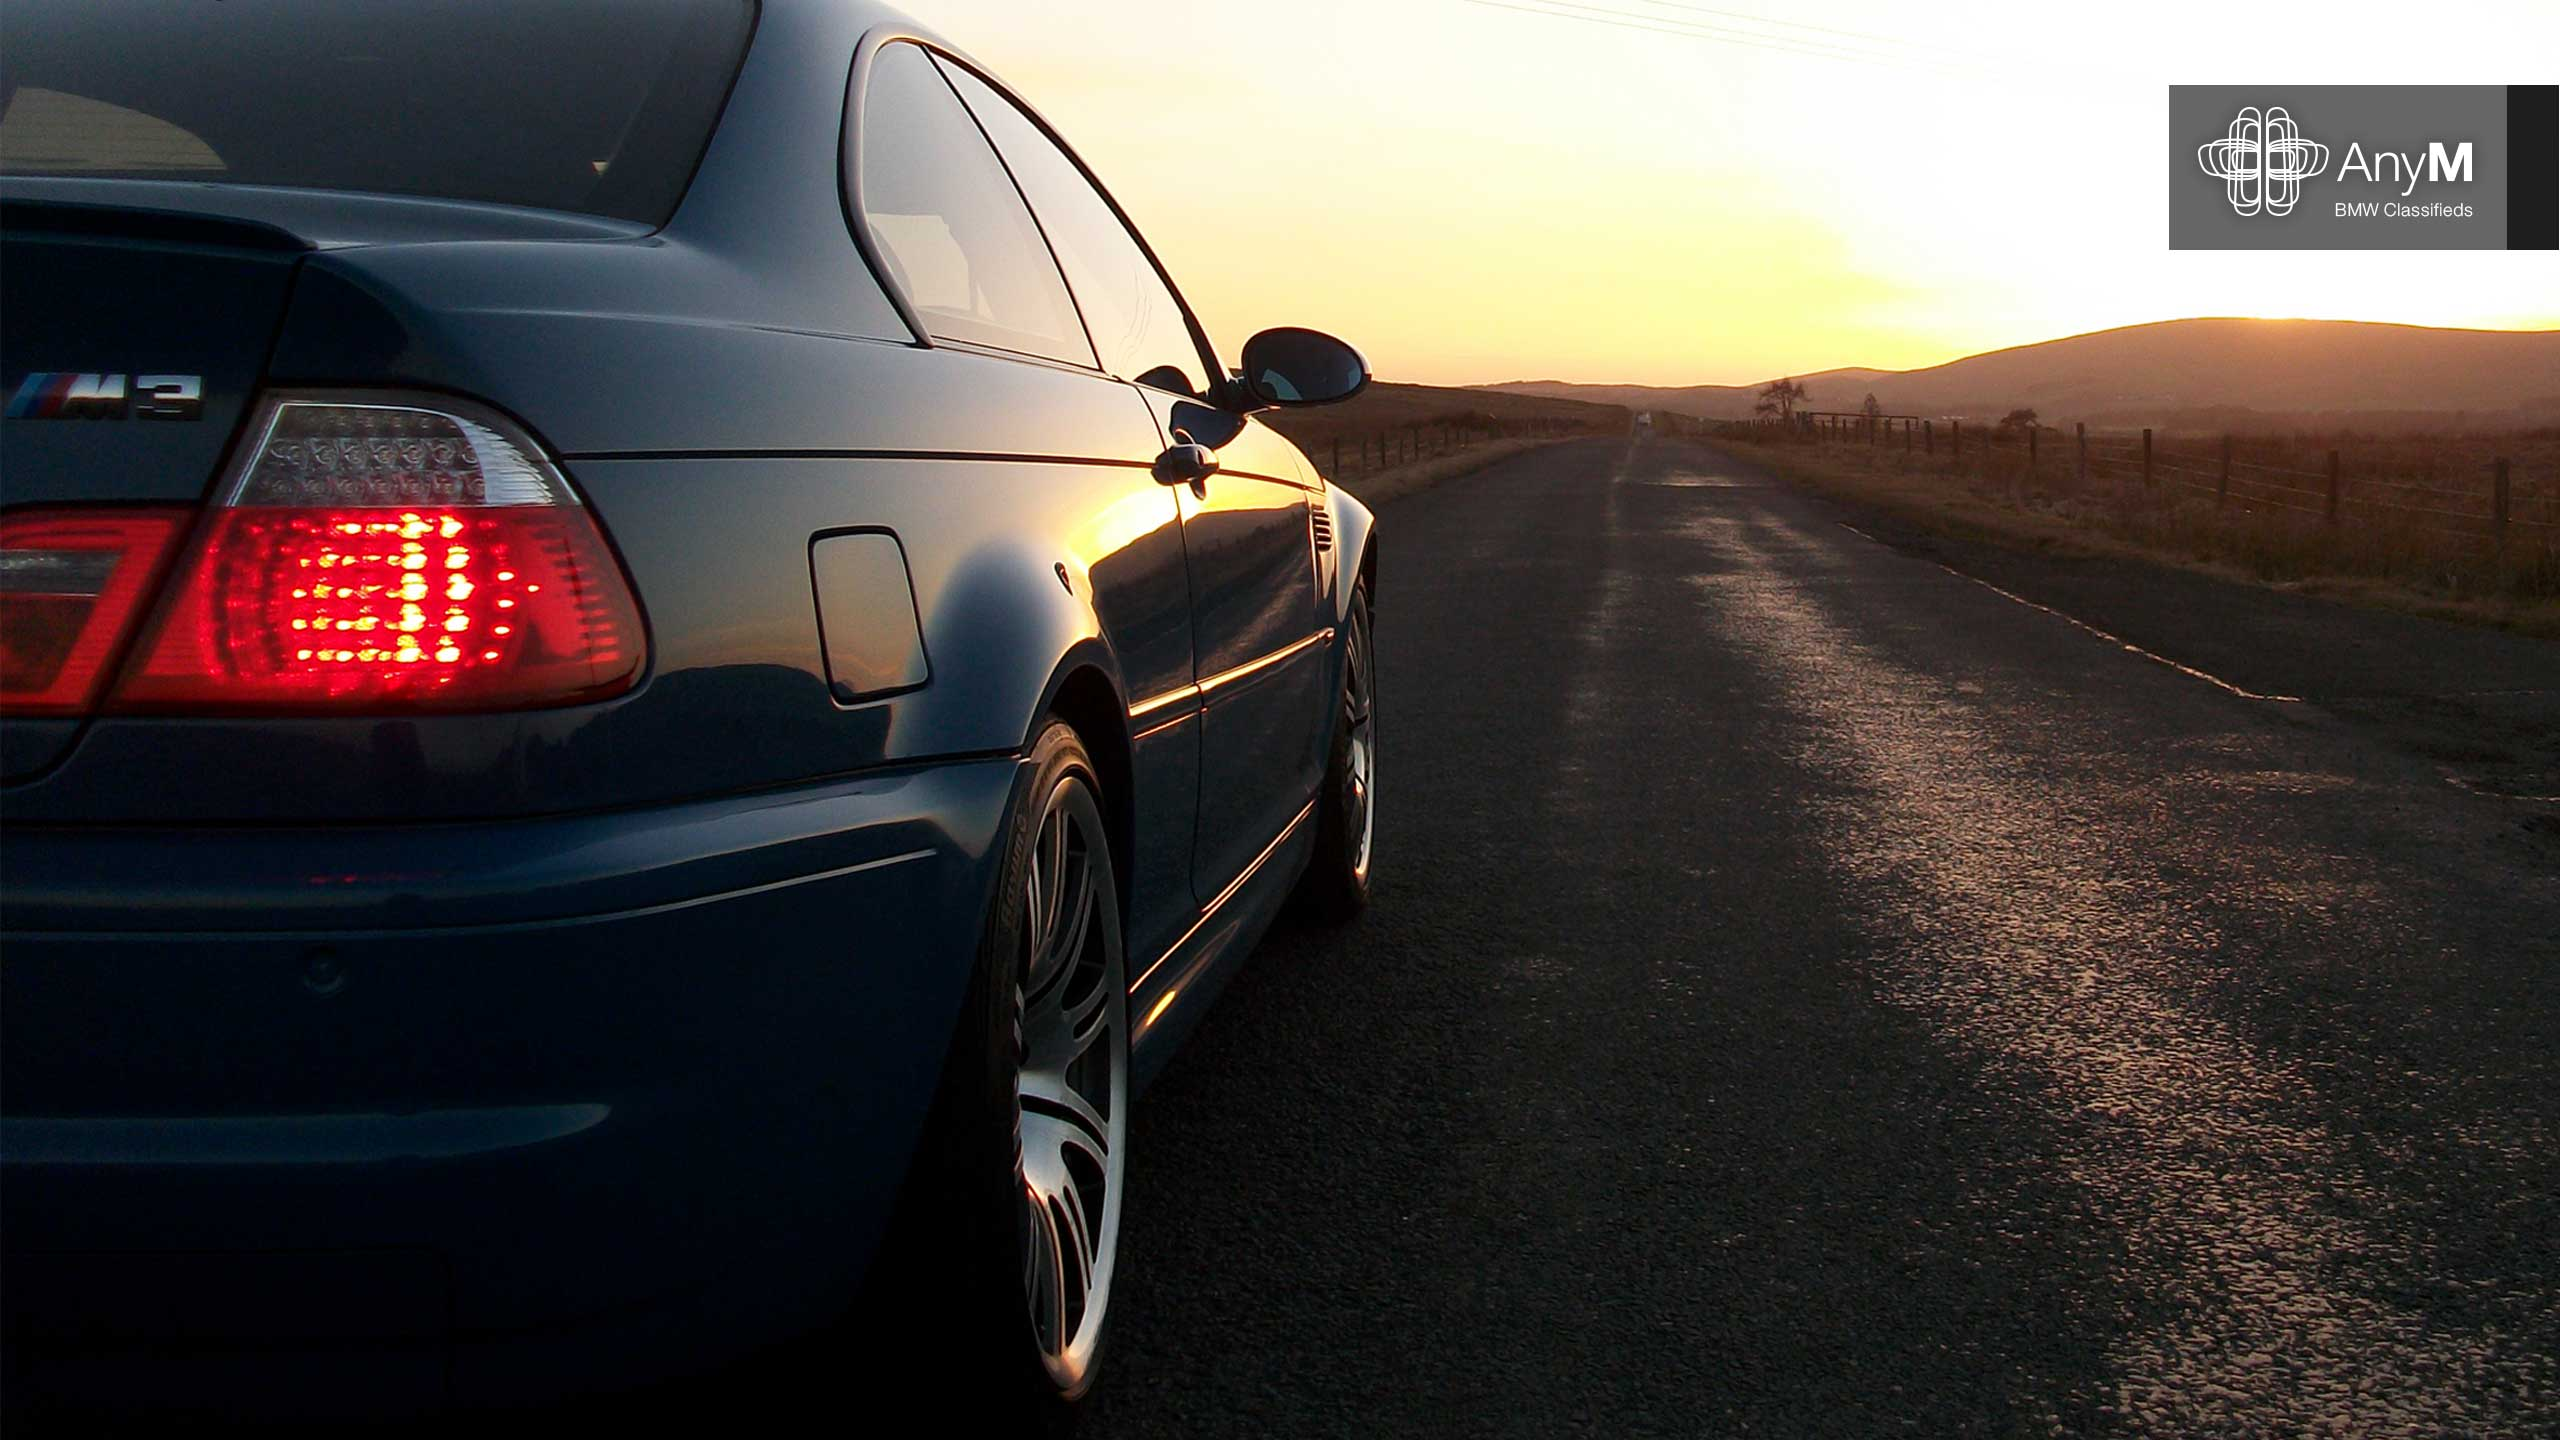 Weekly wallpaper e46 m3 seasonal feeling desktop super wide voltagebd Gallery